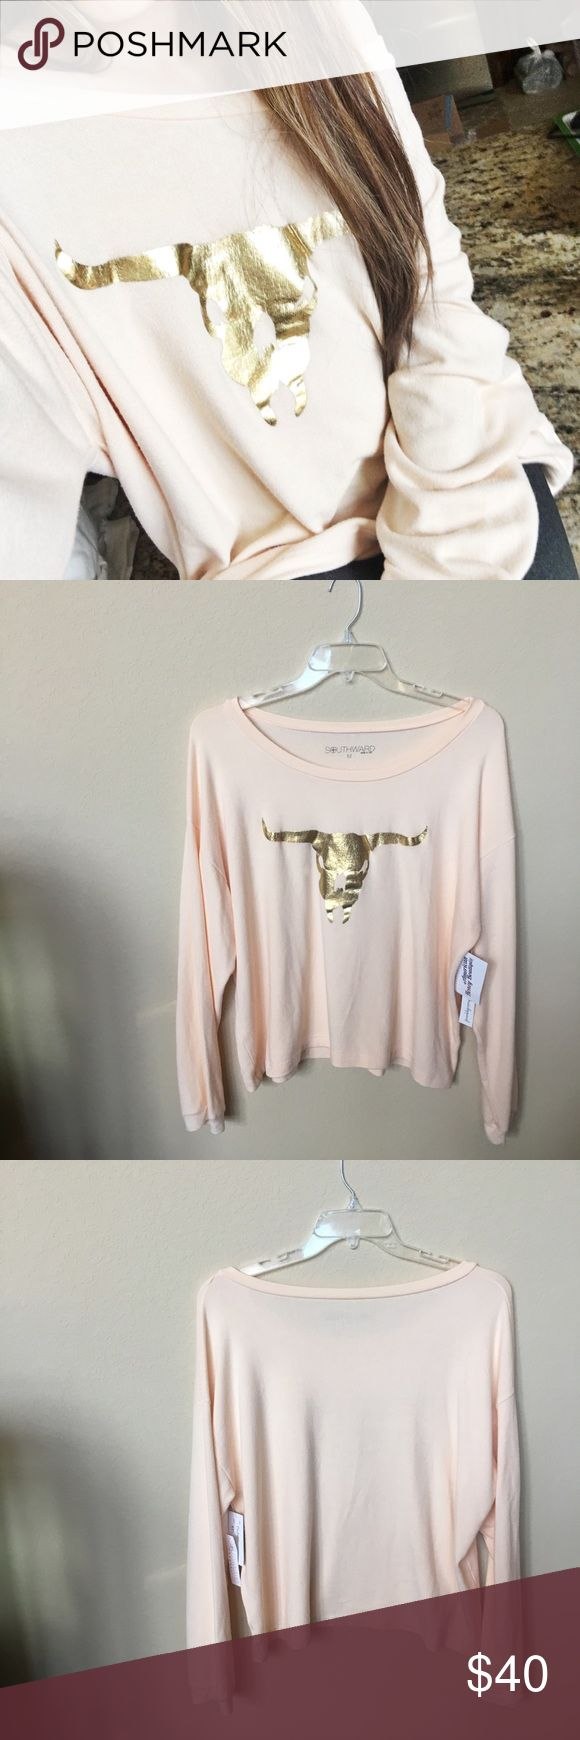 Gold Longhorn Blush Pink Sweater Gold foil longhorn graphic on a pretty blush pink sweater. Oversized fit. Super comfy to lounge around in or to wear for a casual look. Brand new with tags. Purchased from a boutique. Listed as show me your mumu for exposure. Show Me Your MuMu Sweaters Crew & Scoop Necks